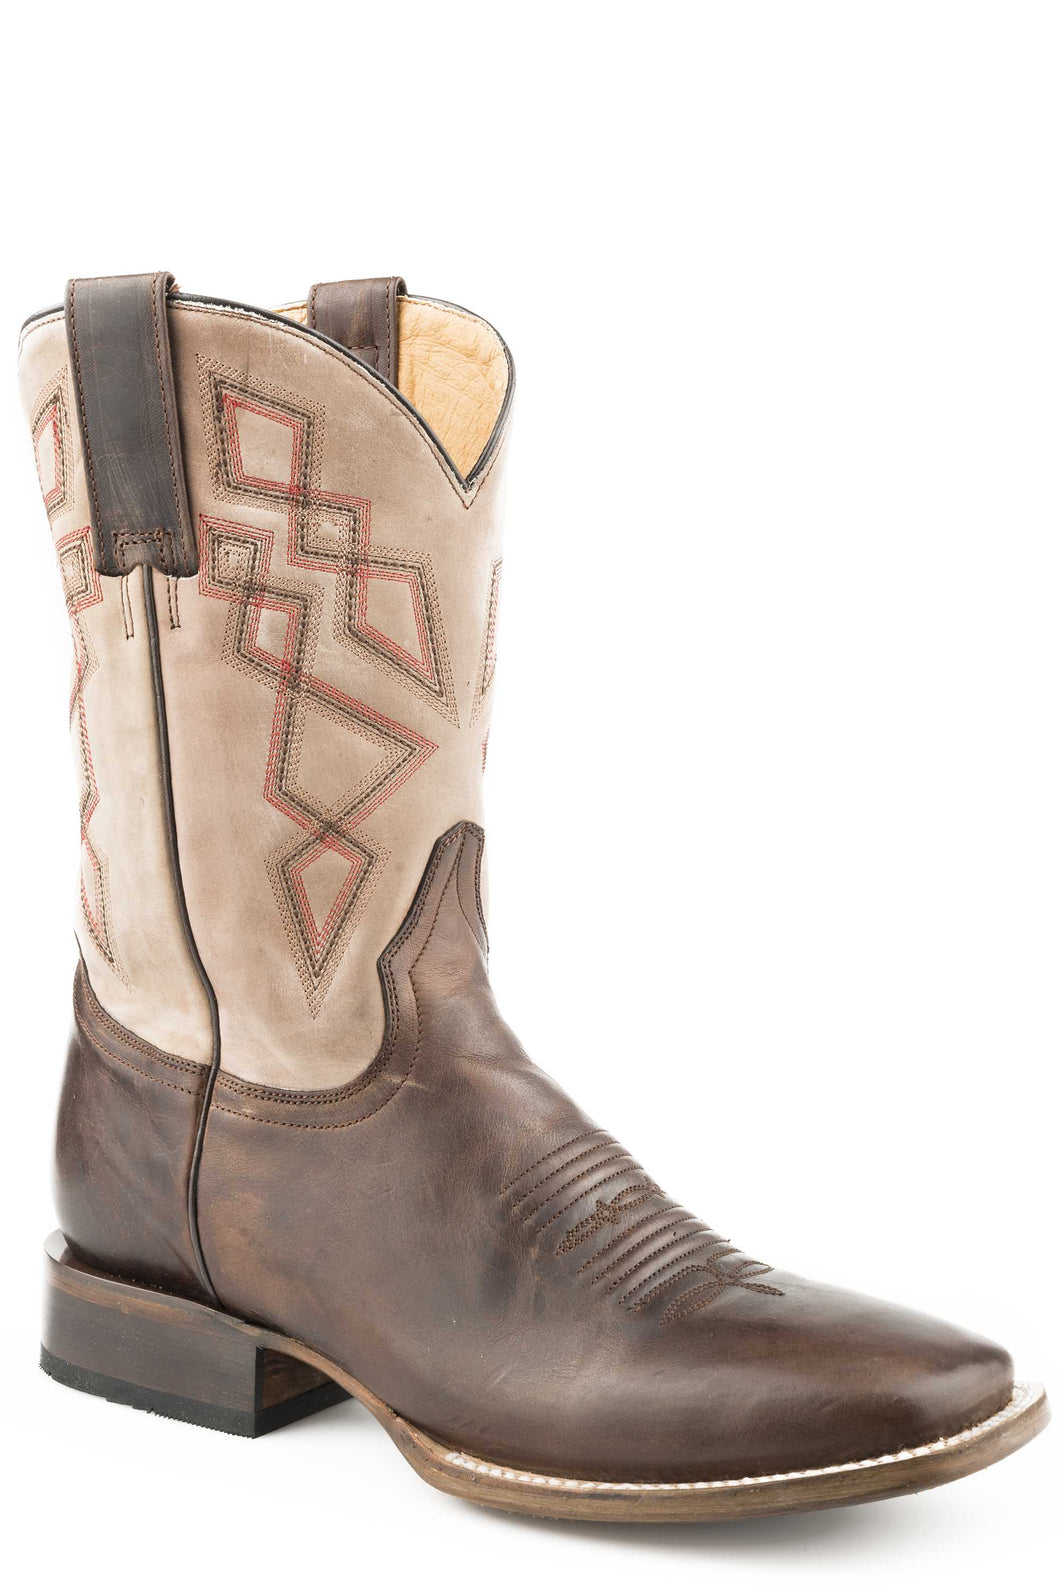 Ashkii Boot Mens Boots Waxy Brown Leather Vamp